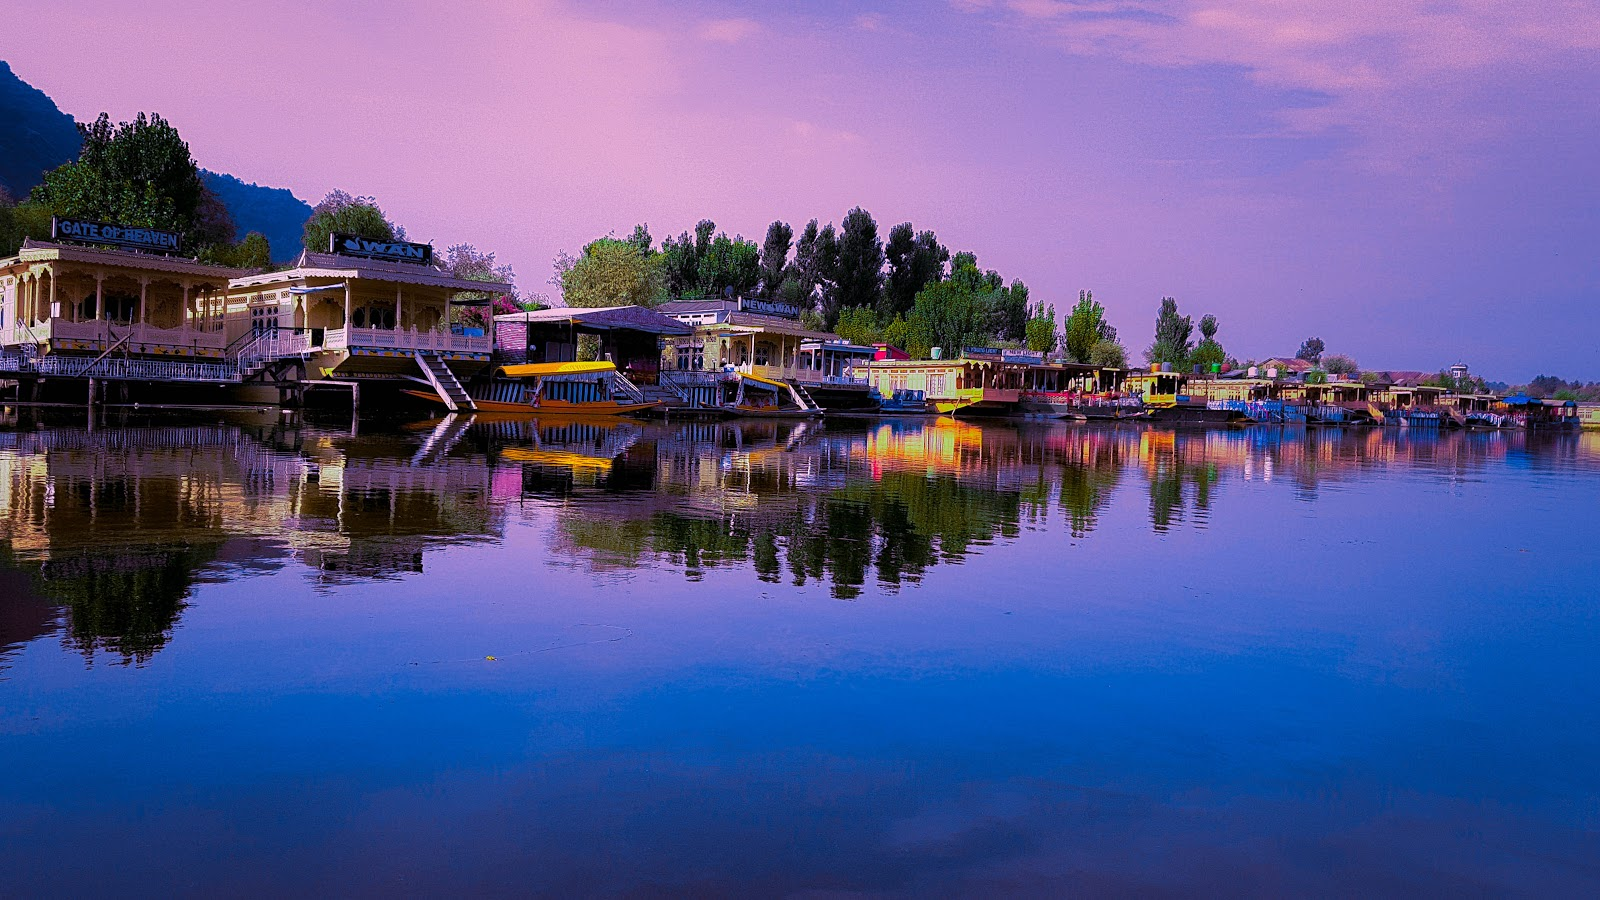 Boathouse In Dal Lake, Kashmir